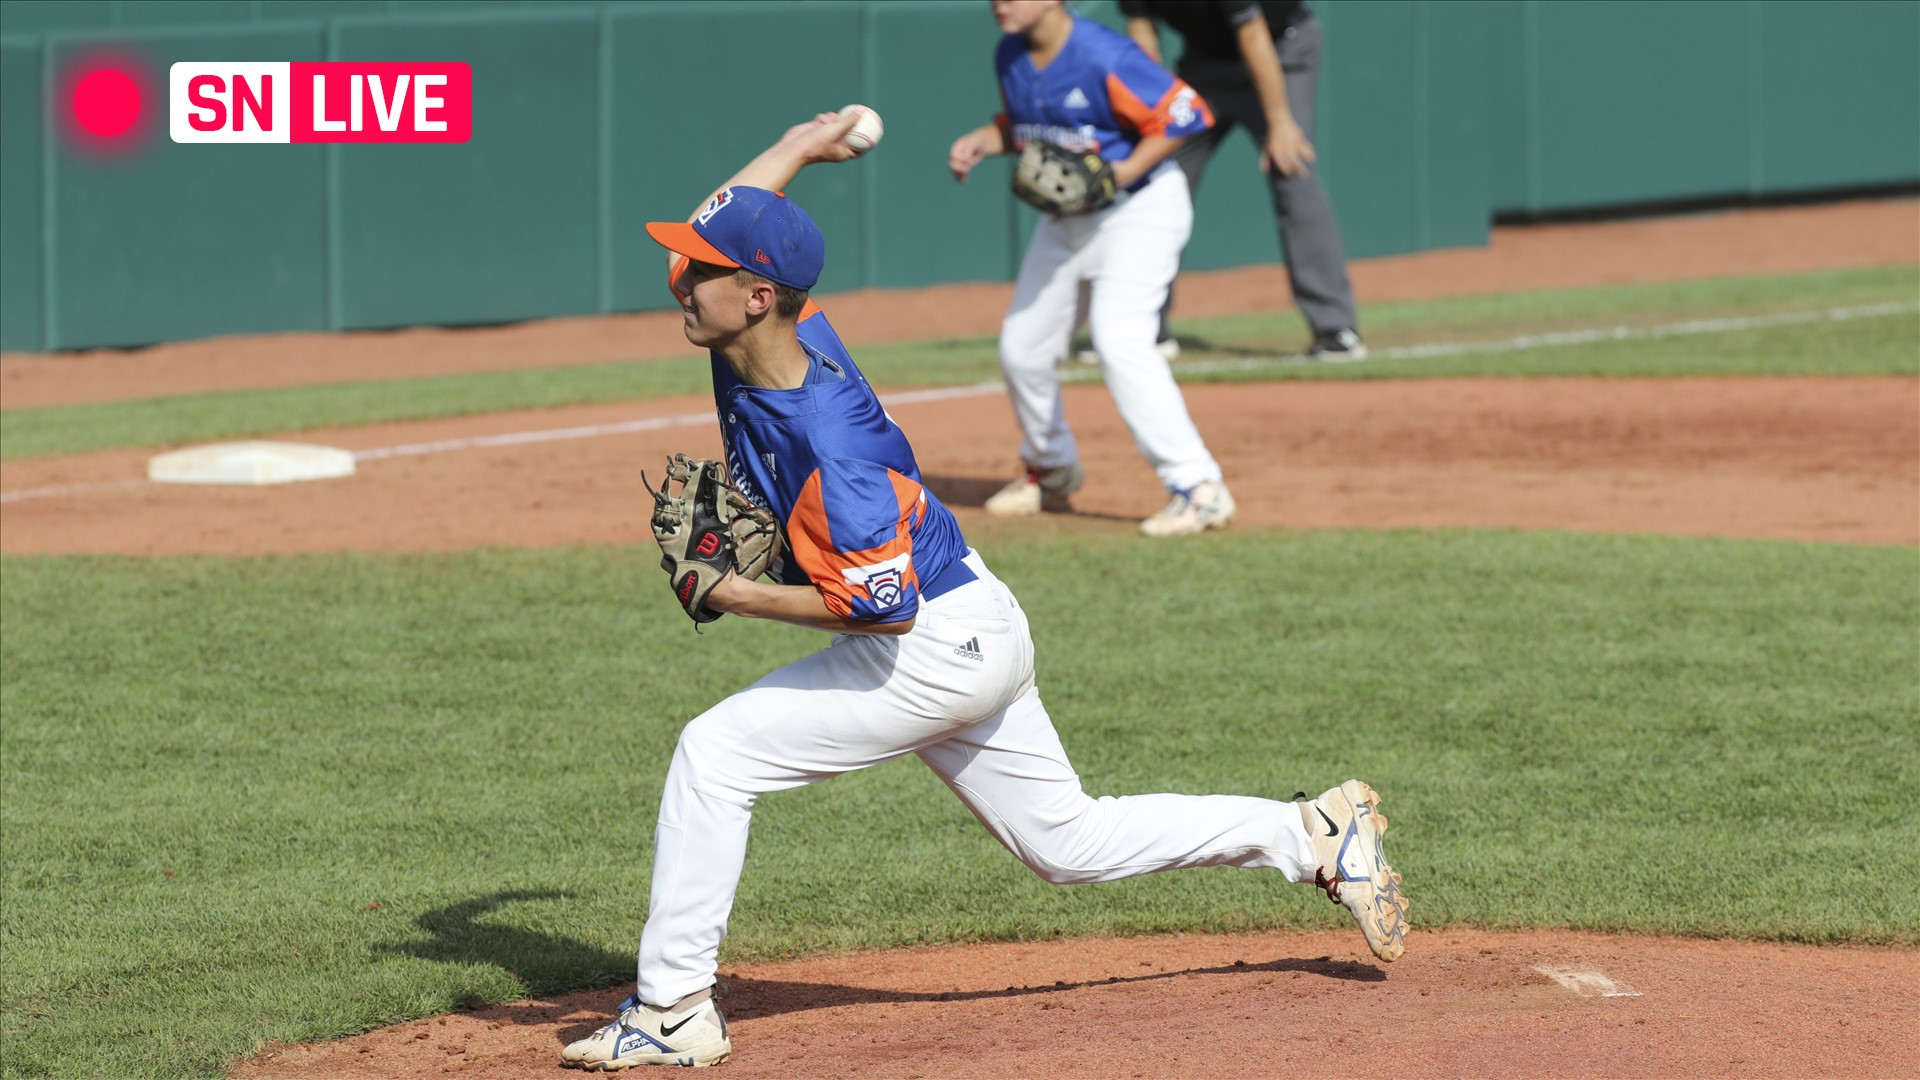 Little League World Series 2021 live score, results, highlights from Ohio vs. Michigan championship